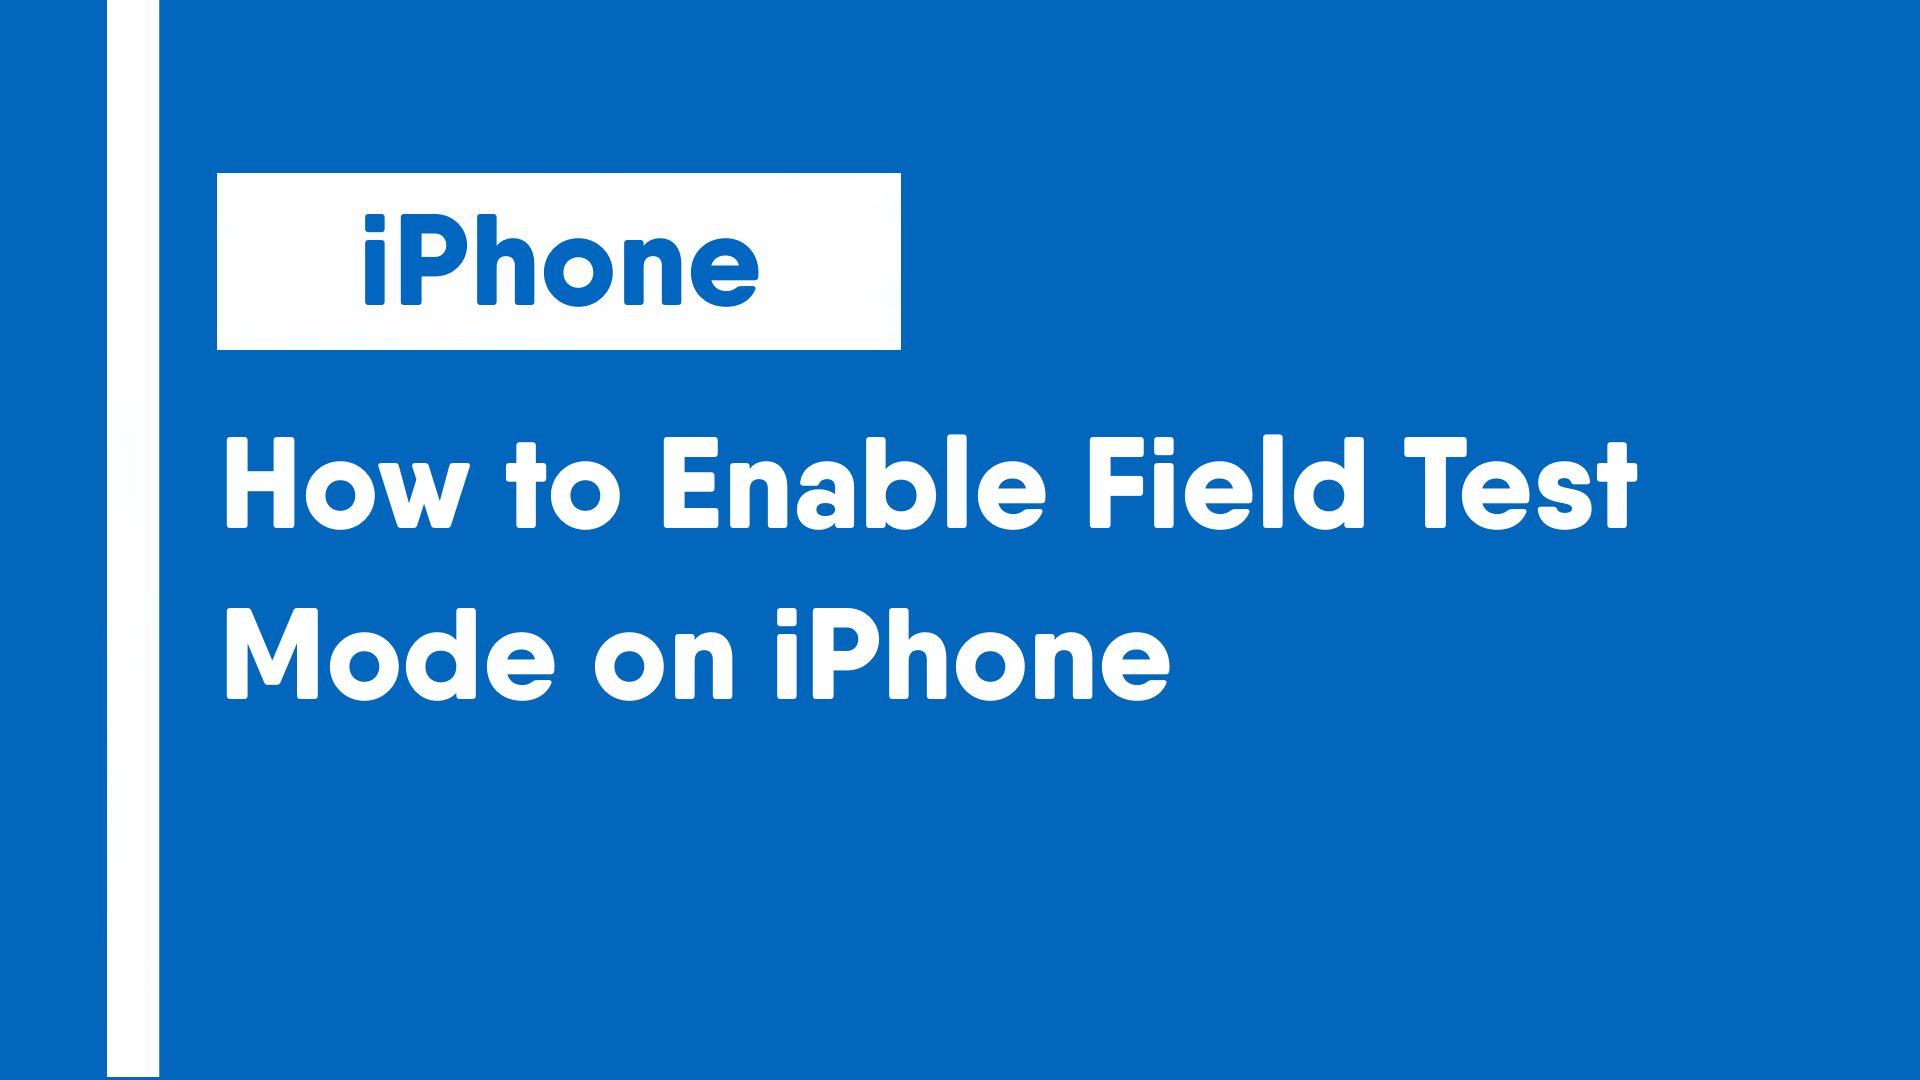 How to Enable Field Test Mode on iPhone